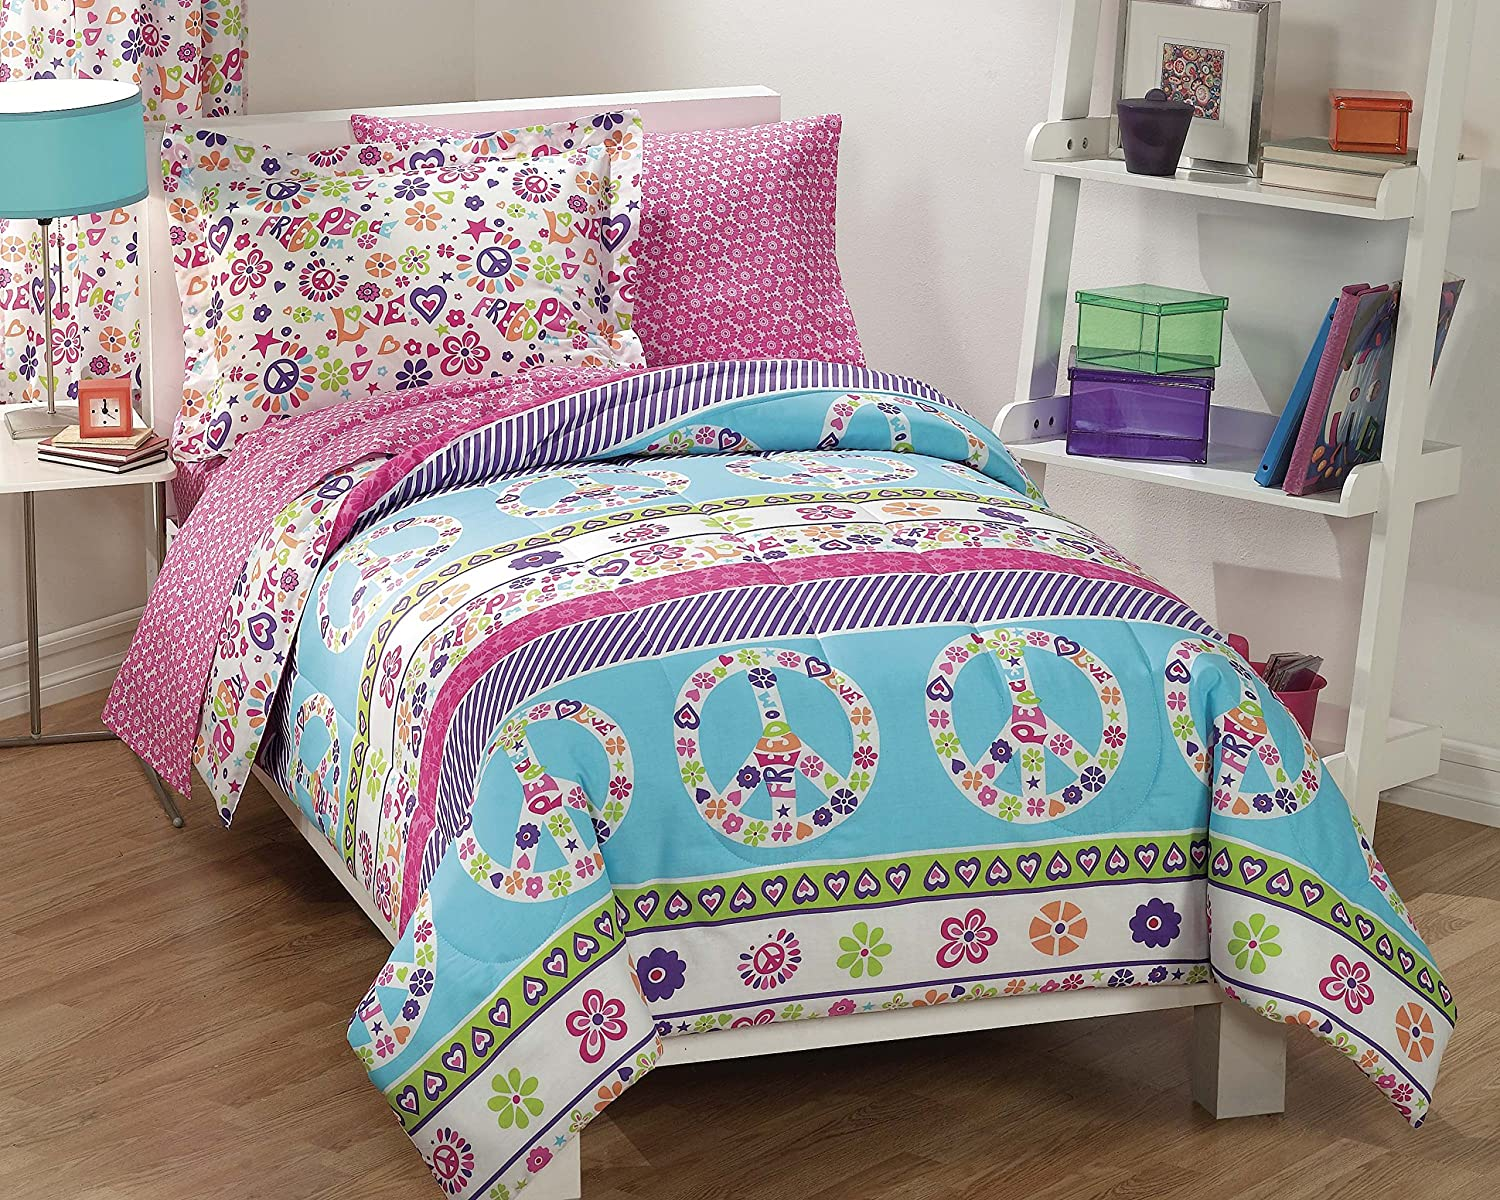 Best cheap childrens and teen twin boy or girl bedding set collection ease bedding with style - Cute teenage girl bedding sets ...